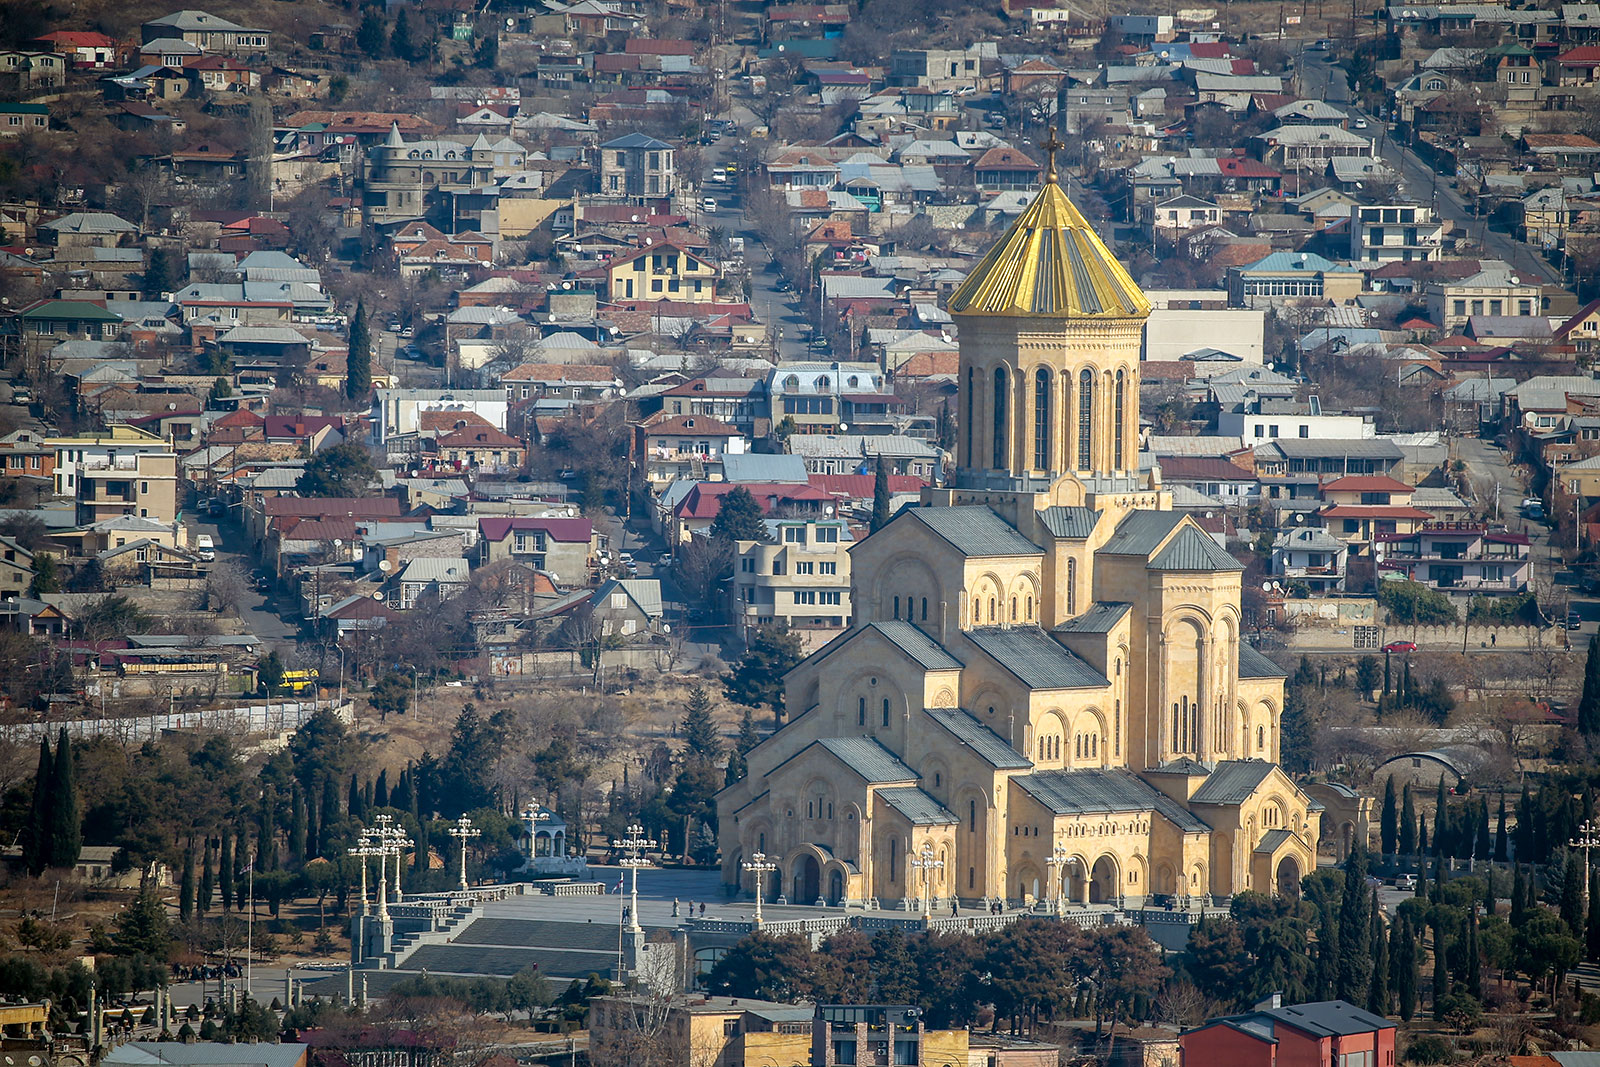 In this file photo, the biggest cathedral of Georgia, The Holy Trinity Cathedral of Tbilisi, commonly known as Sameba, is seen in Tbilisi, Georgia on February 18, 2020.